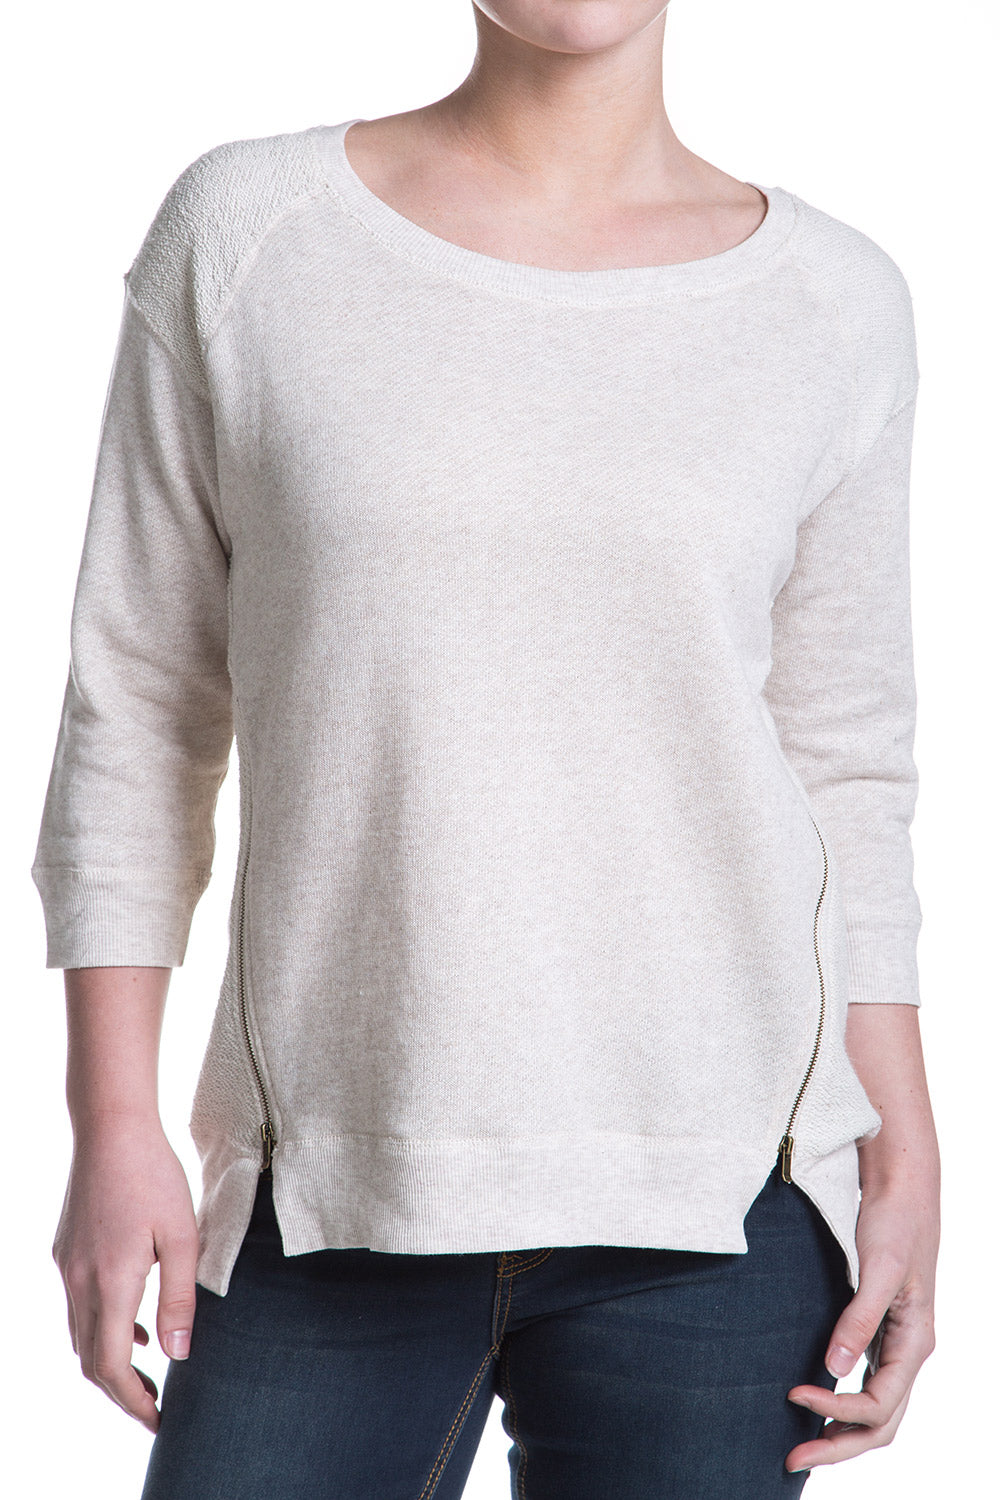 Type 3 Zipper Contrast Top